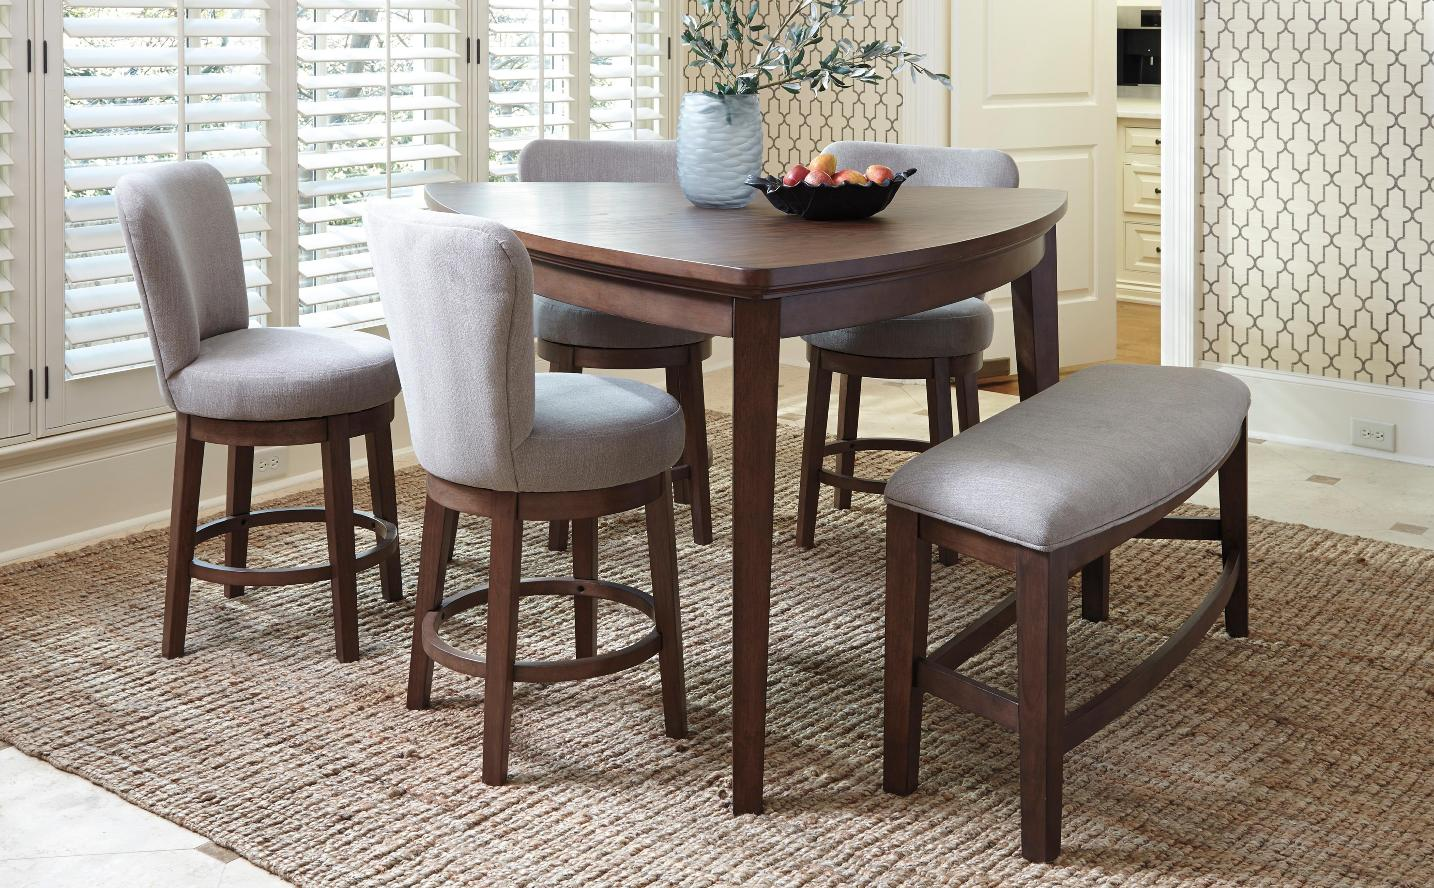 Dining room tables valuable information to get to know for Dining room table 2